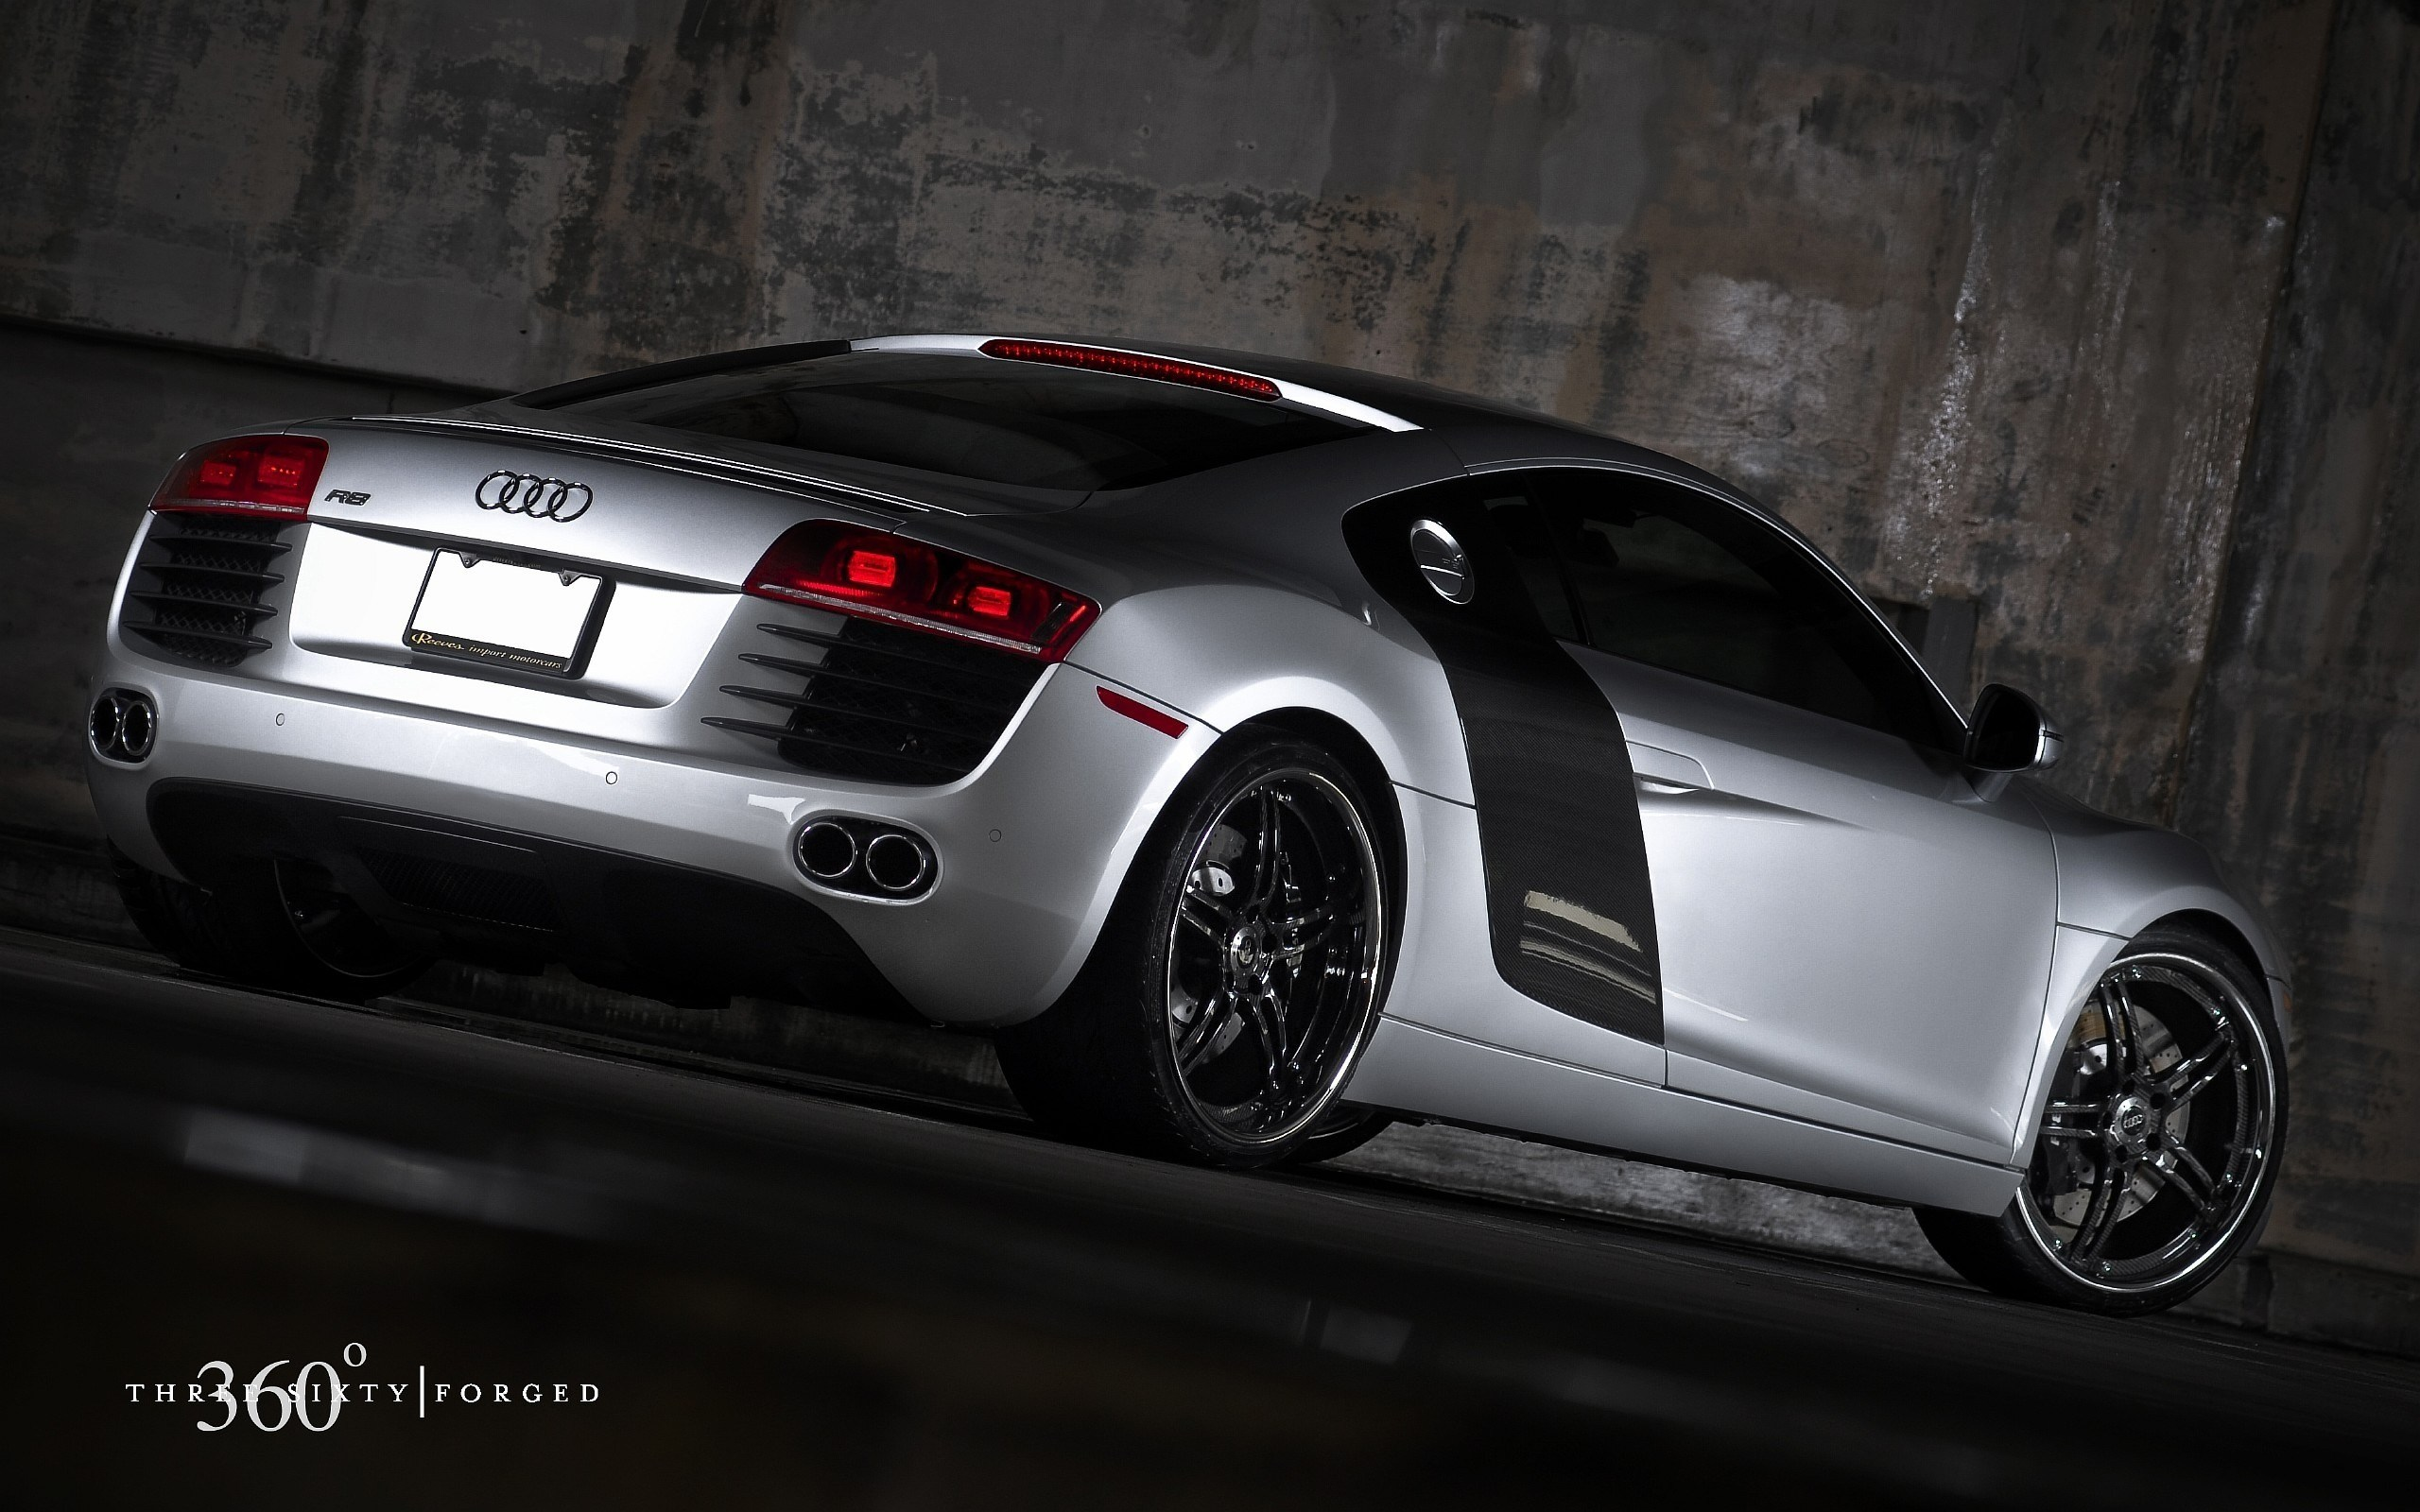 Audi r8 360 Forged Wide Monitor HD Wallpaper 4K Wallpapers 2560x1600